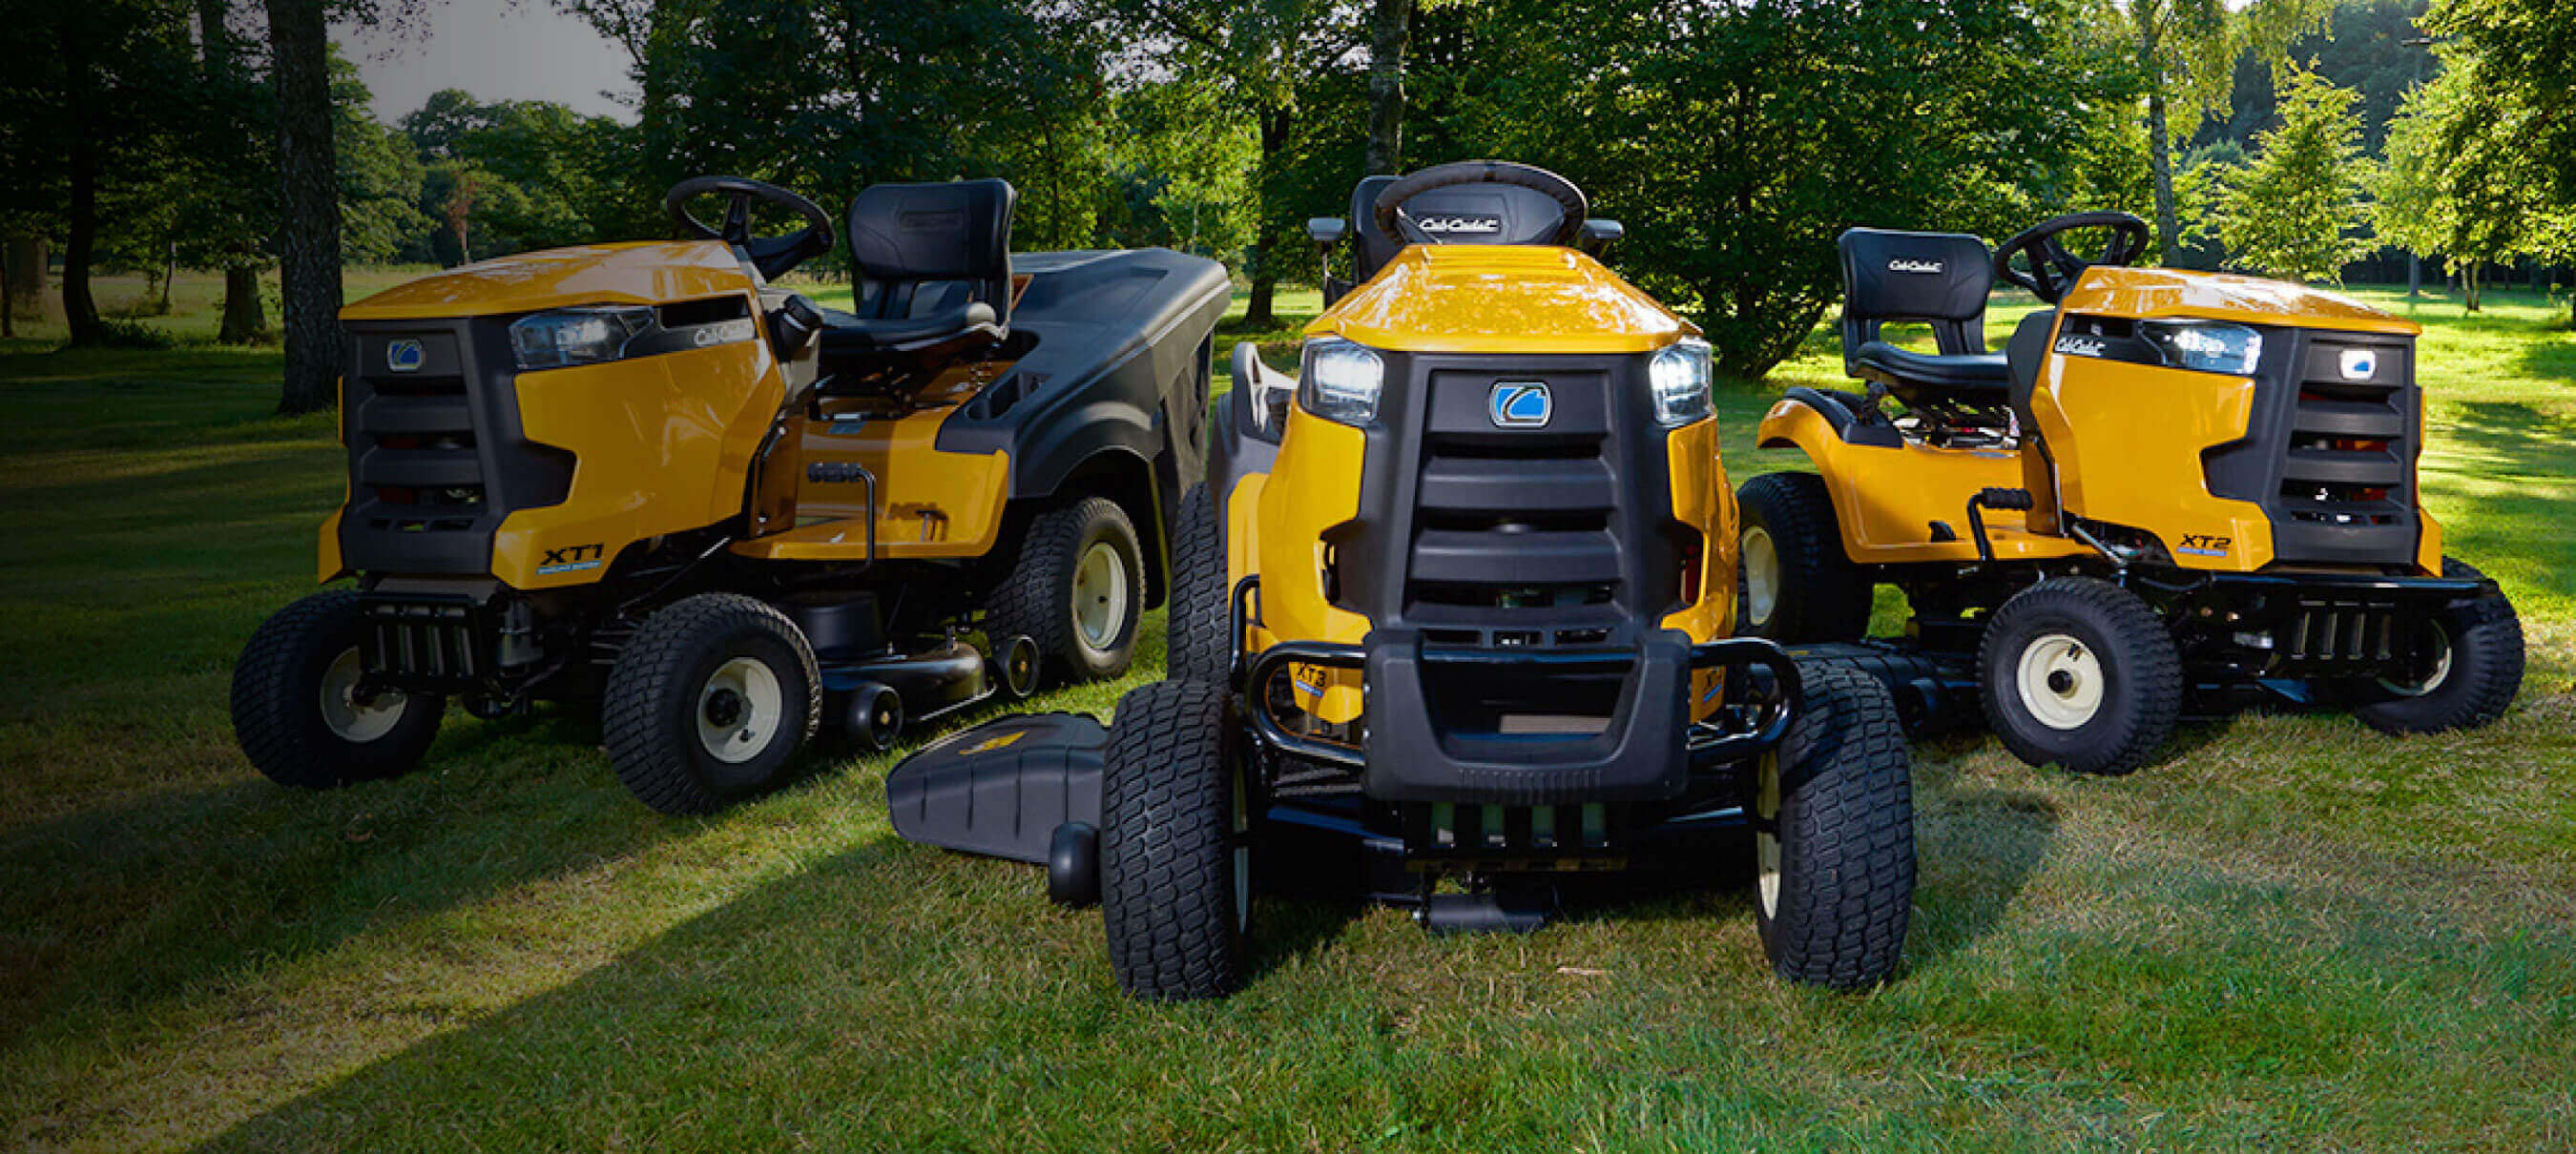 Lawn Tractors and Ride-on Mowers